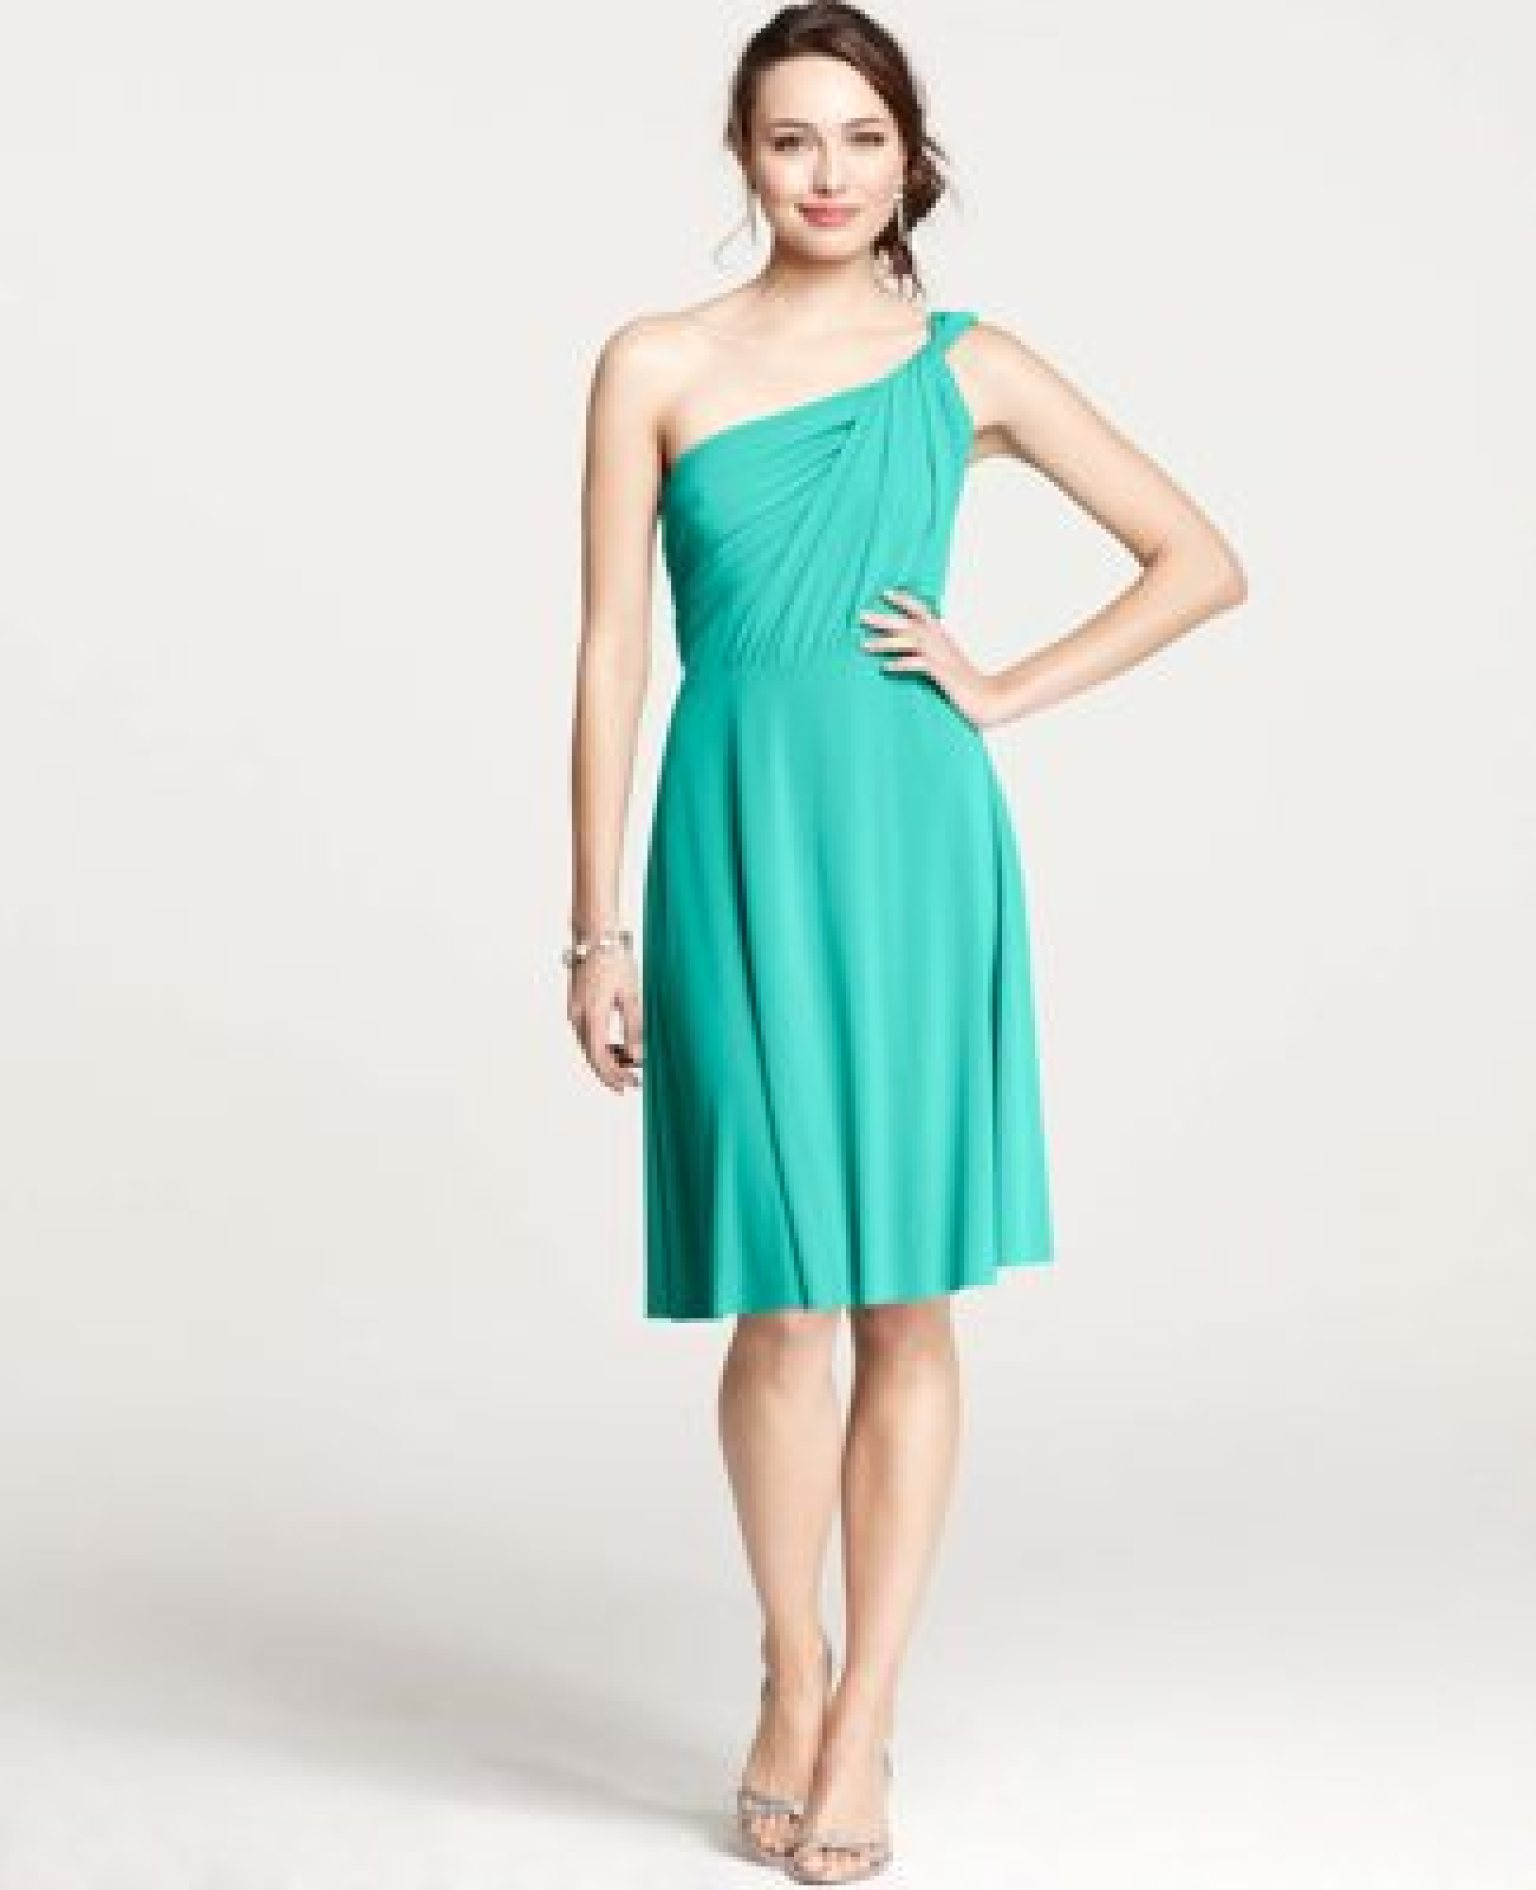 Wedding guest dresses for summer affairs photos huffpost for Dress for a spring wedding